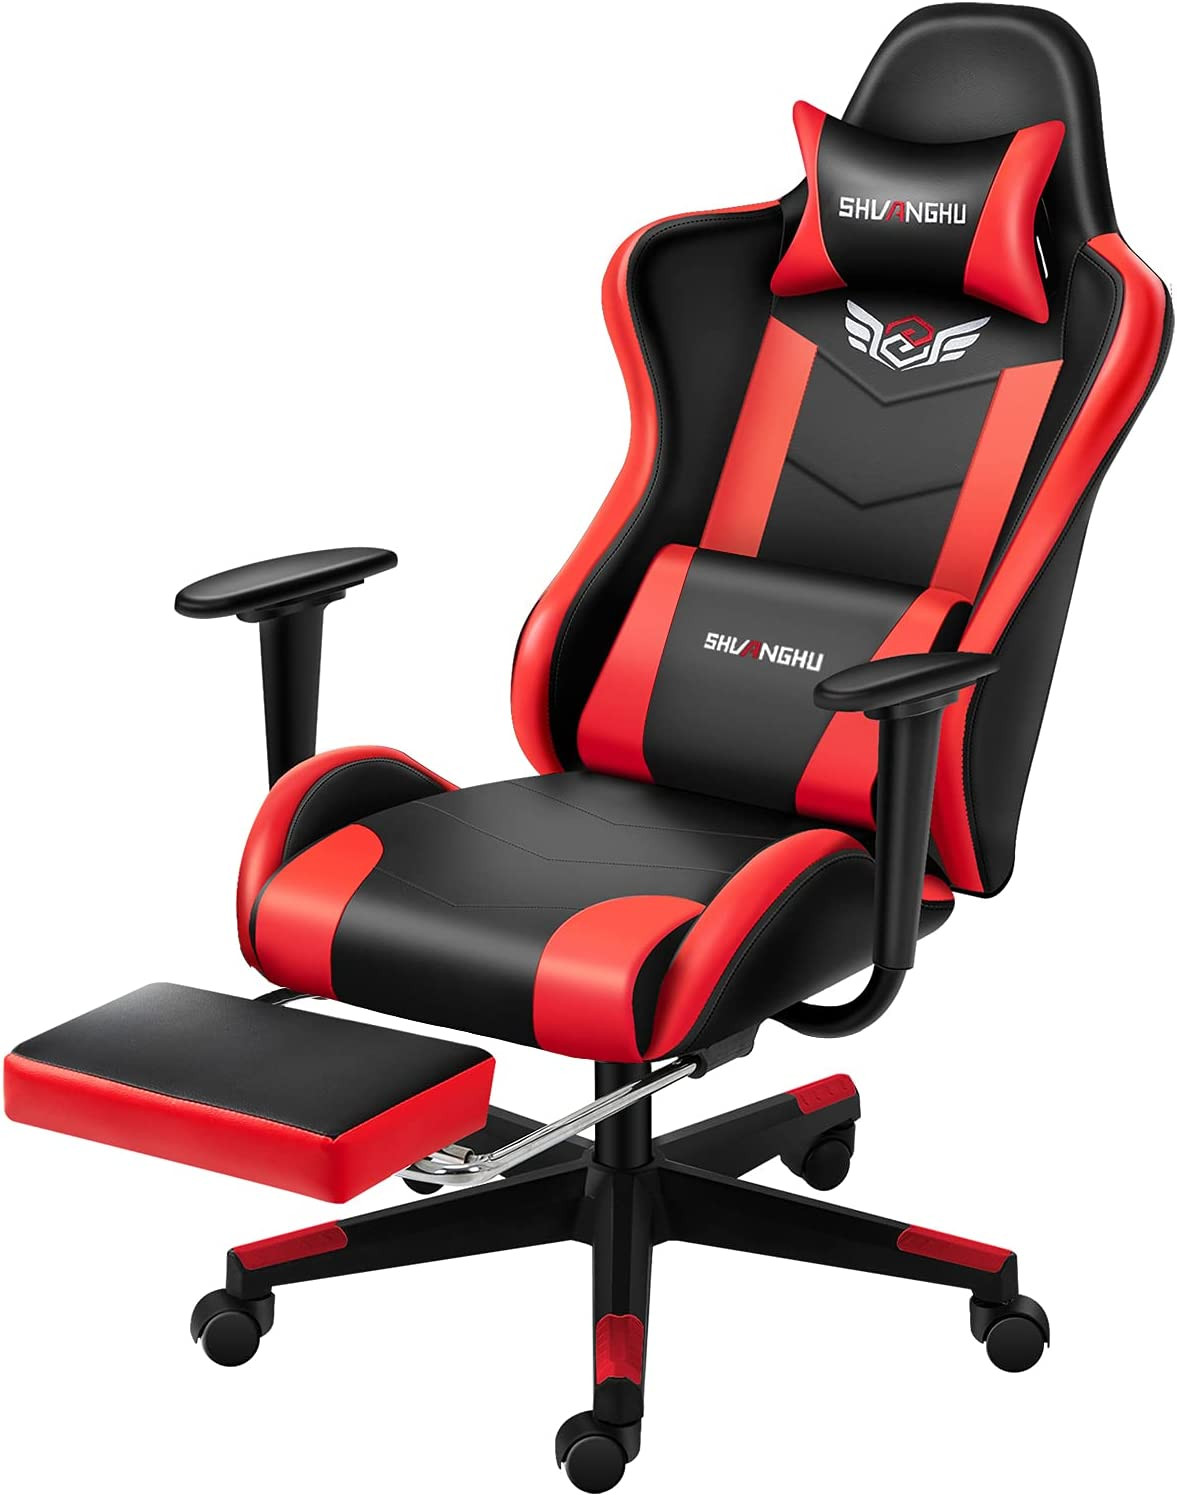 Shipping included Shuanghu Gaming Popular overseas Chair Office with Ergonomic Computer